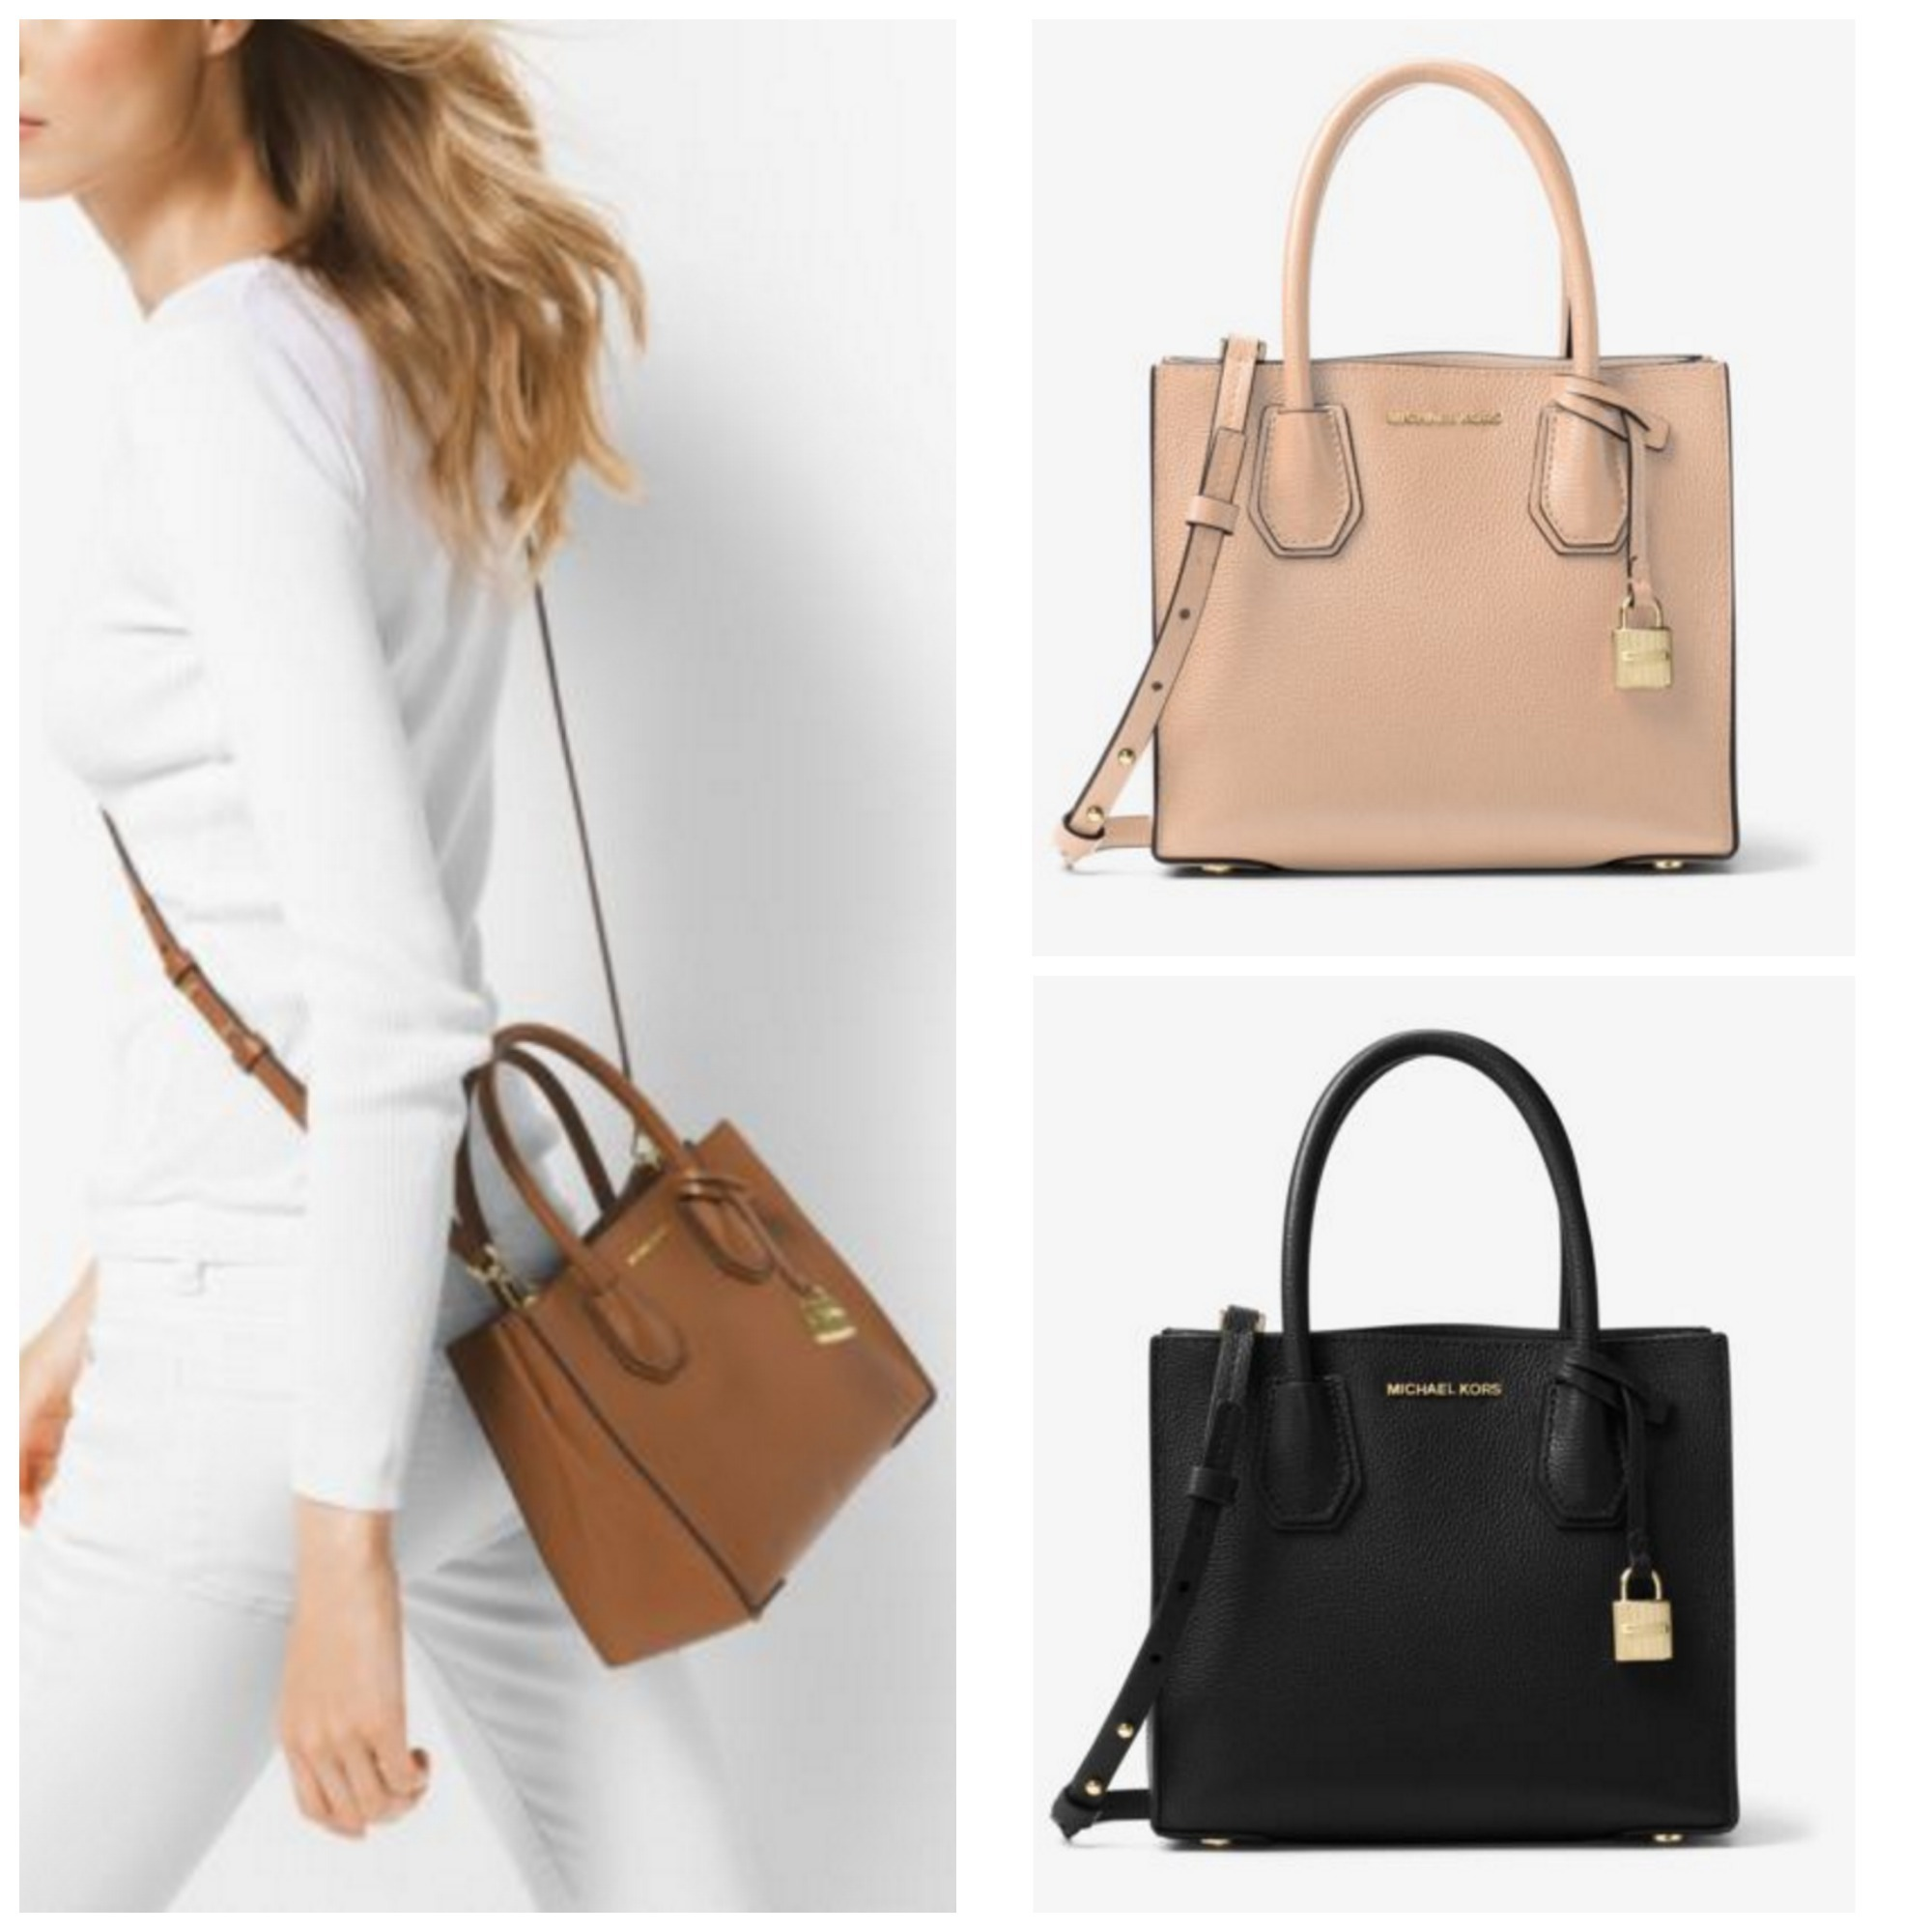 eb870fc7c9fd Michael Kors MK MICHAEL KORS Mercer Medium Bonded-Leather Tote Crossbody by  QueenOfStyle - BUYMA